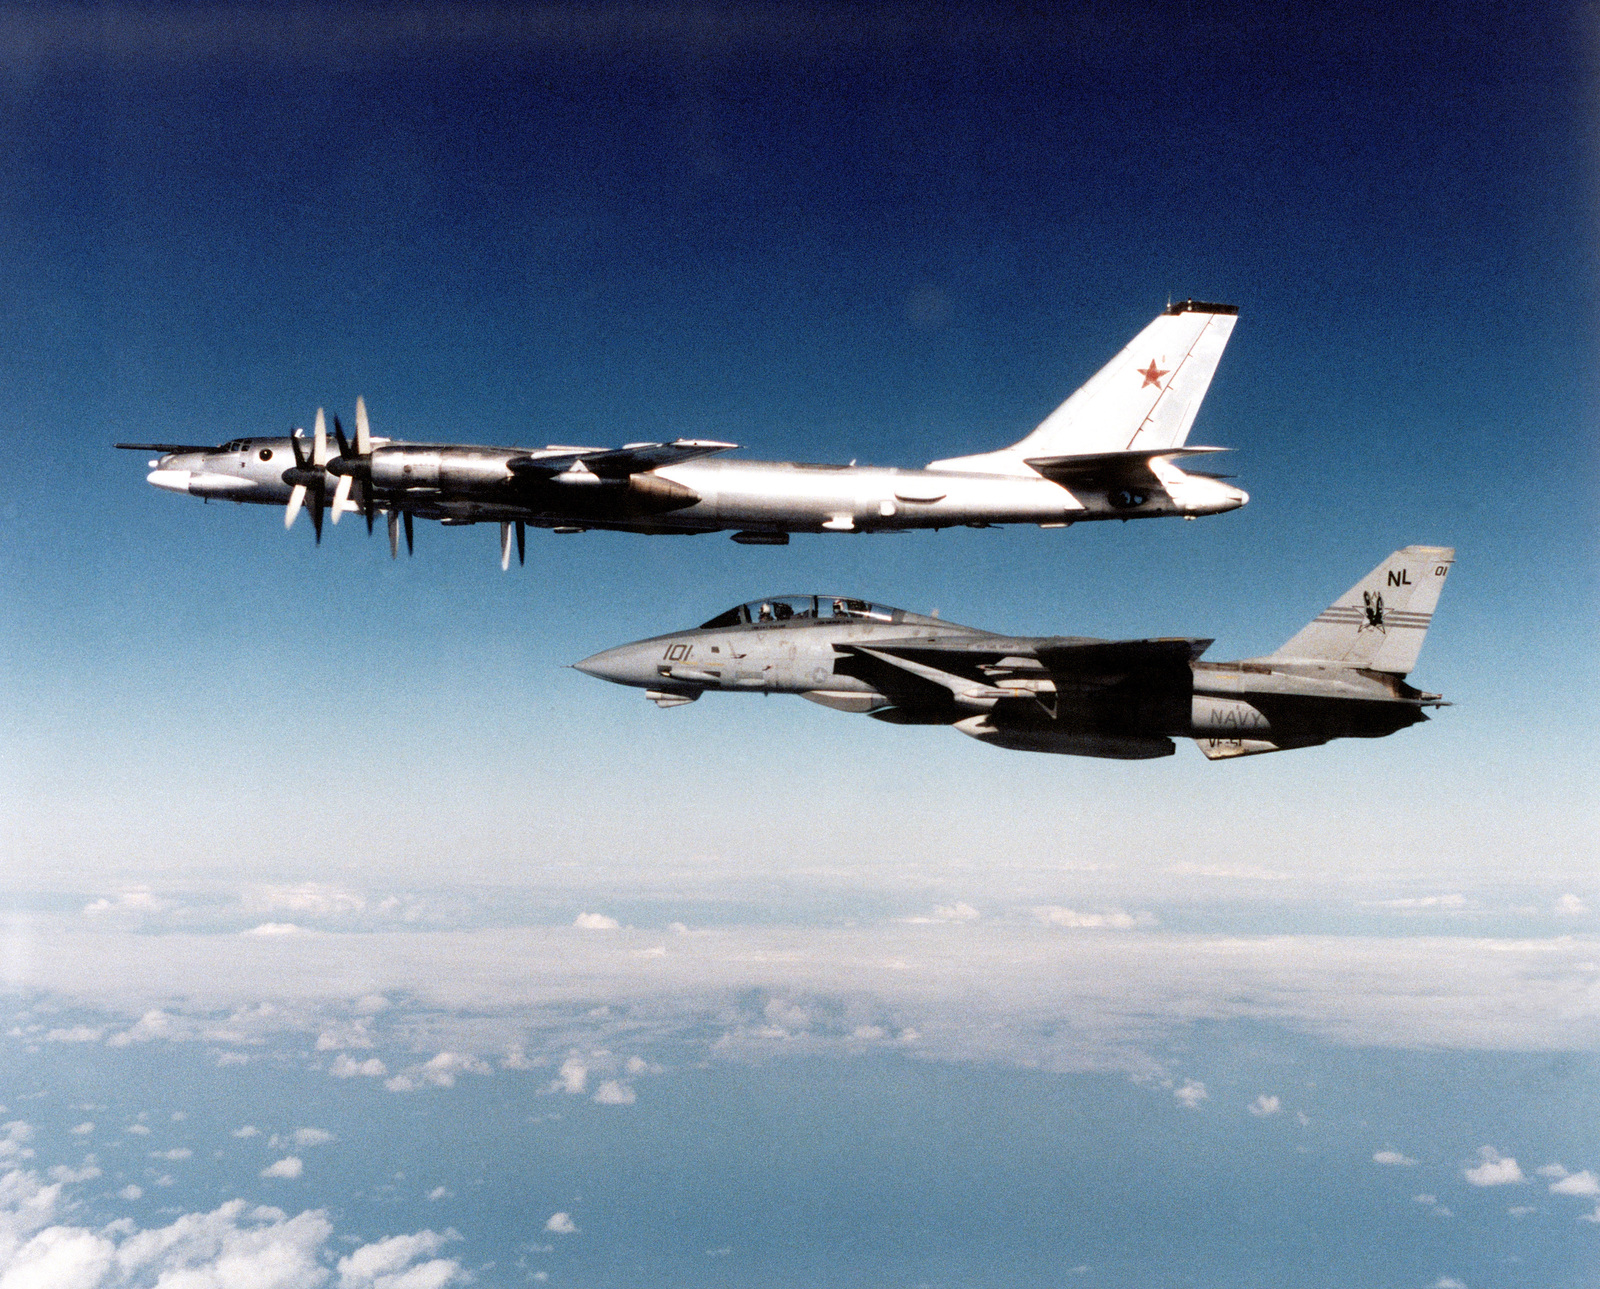 Copy Aerial Image Of A Russian Tupolev Tu 95 Bear With A Us Navy